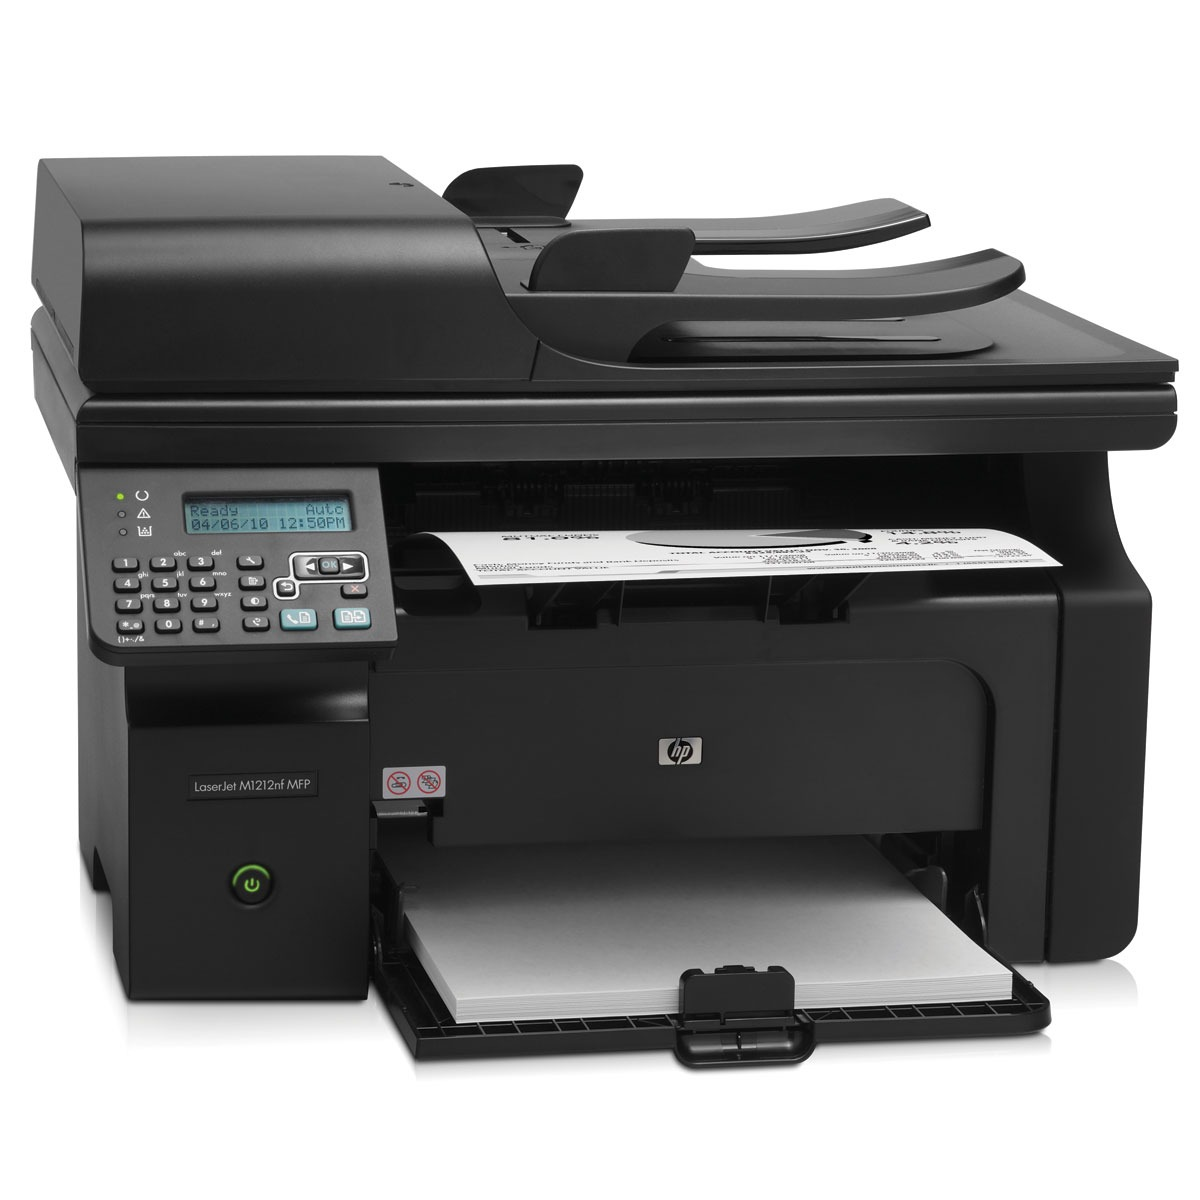 hp laserjet m1212nf mfp how to scan to pdf